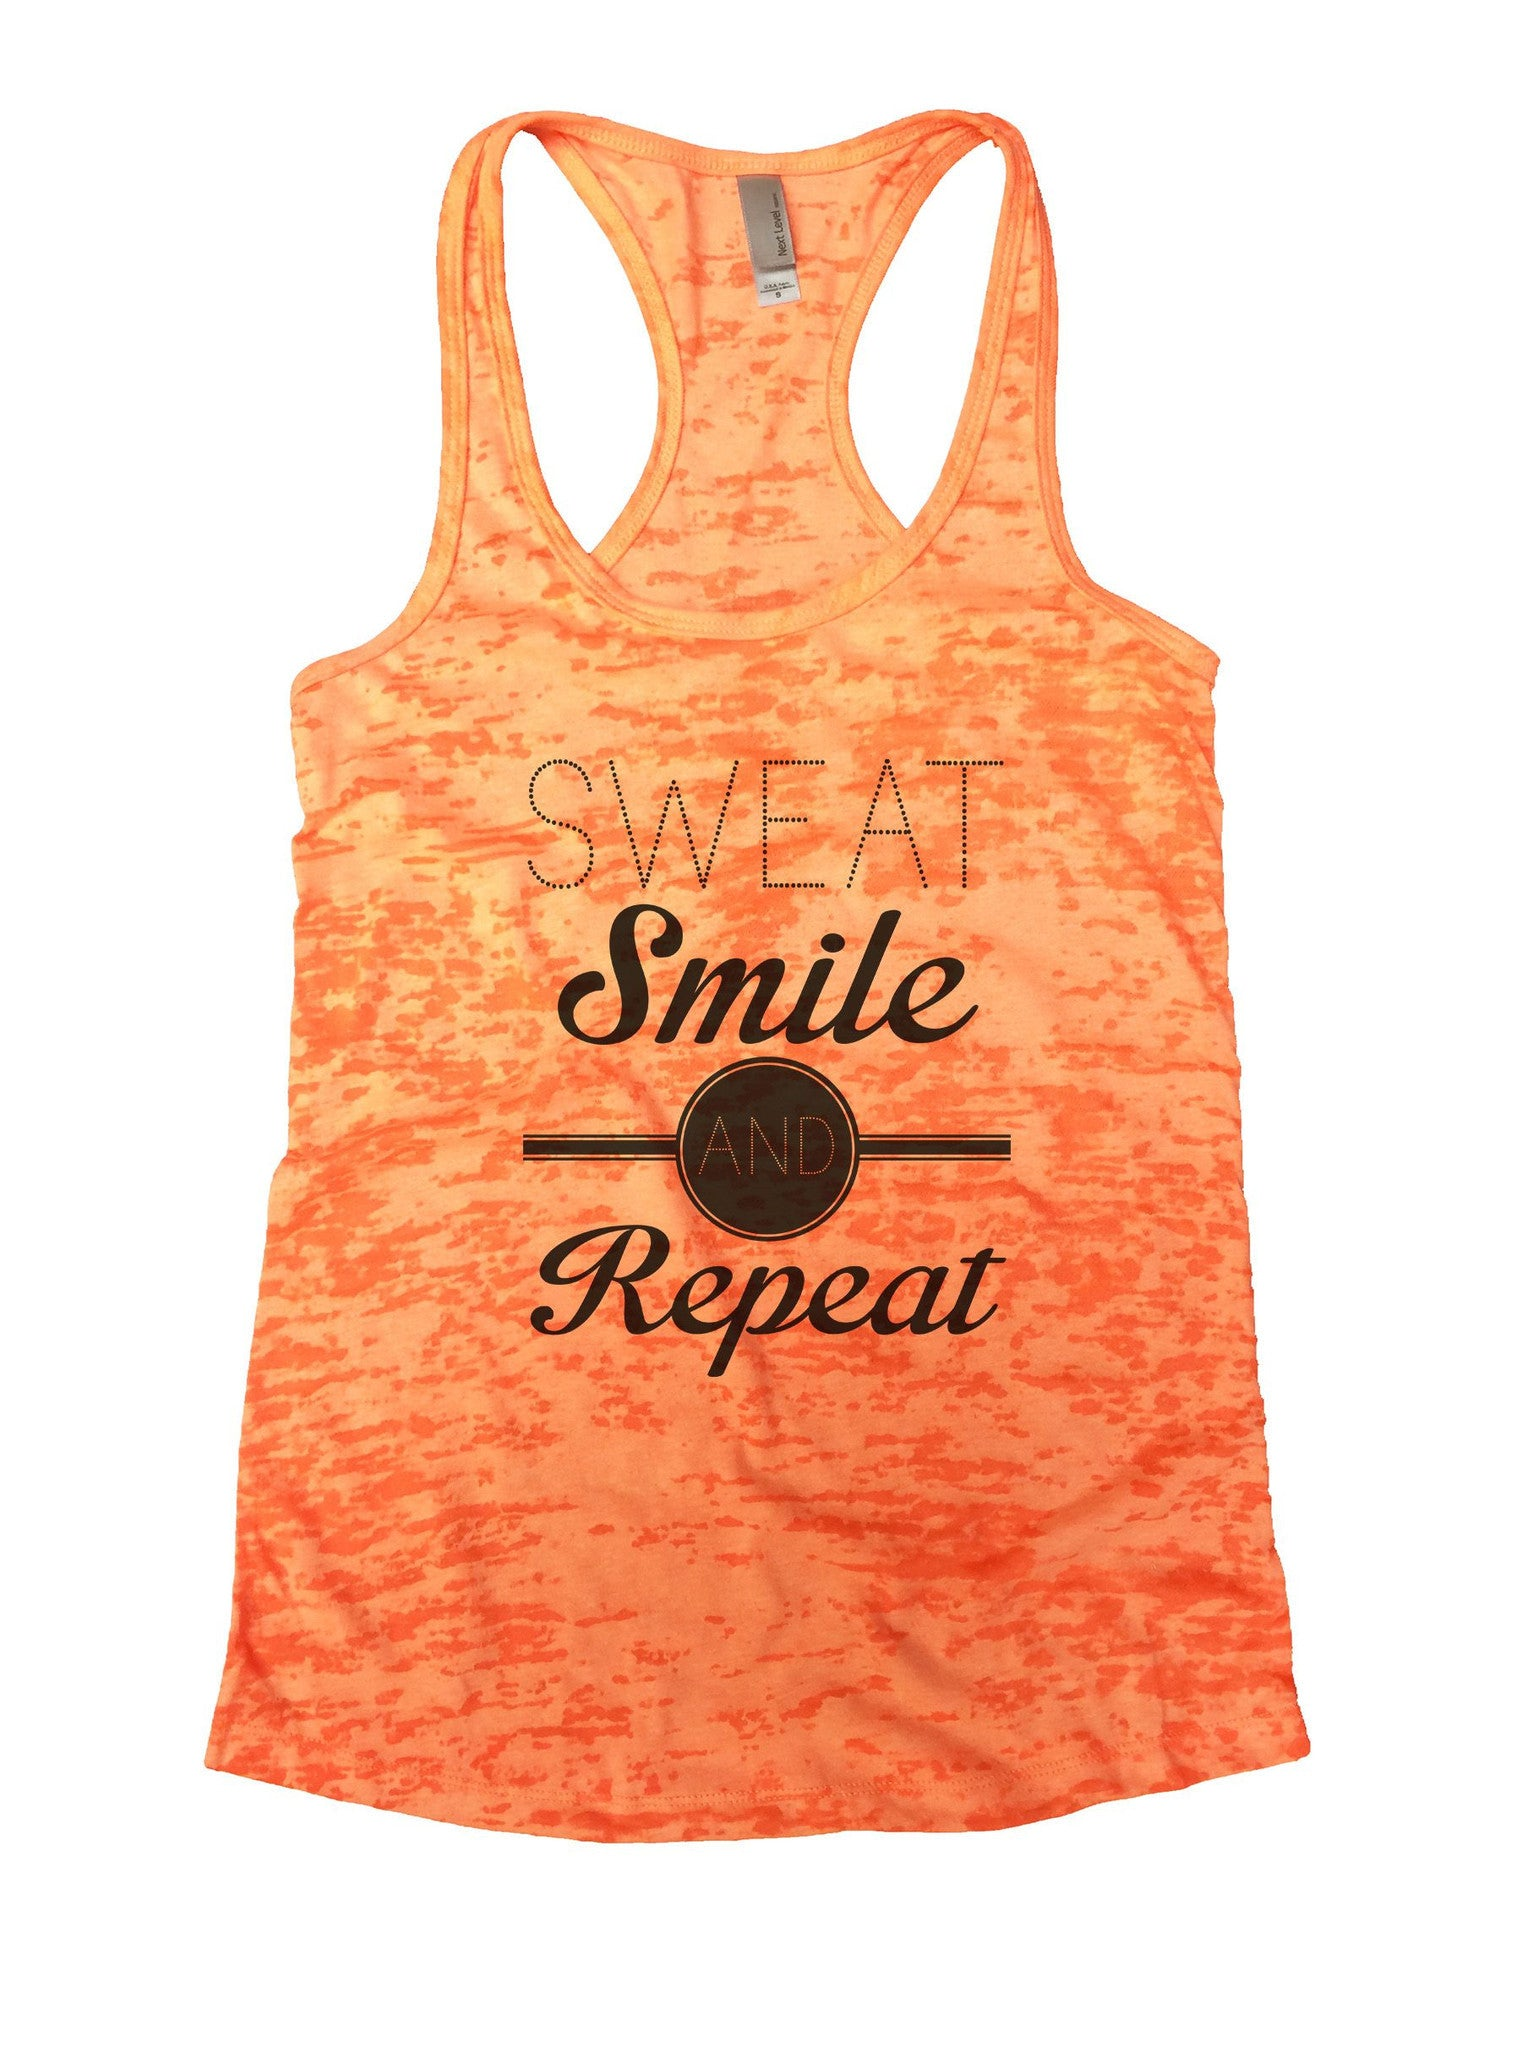 Sweat Smile And Repeat Burnout Tank Top By BurnoutTankTops.com - 944 - Funny Shirts Tank Tops Burnouts and Triblends  - 3